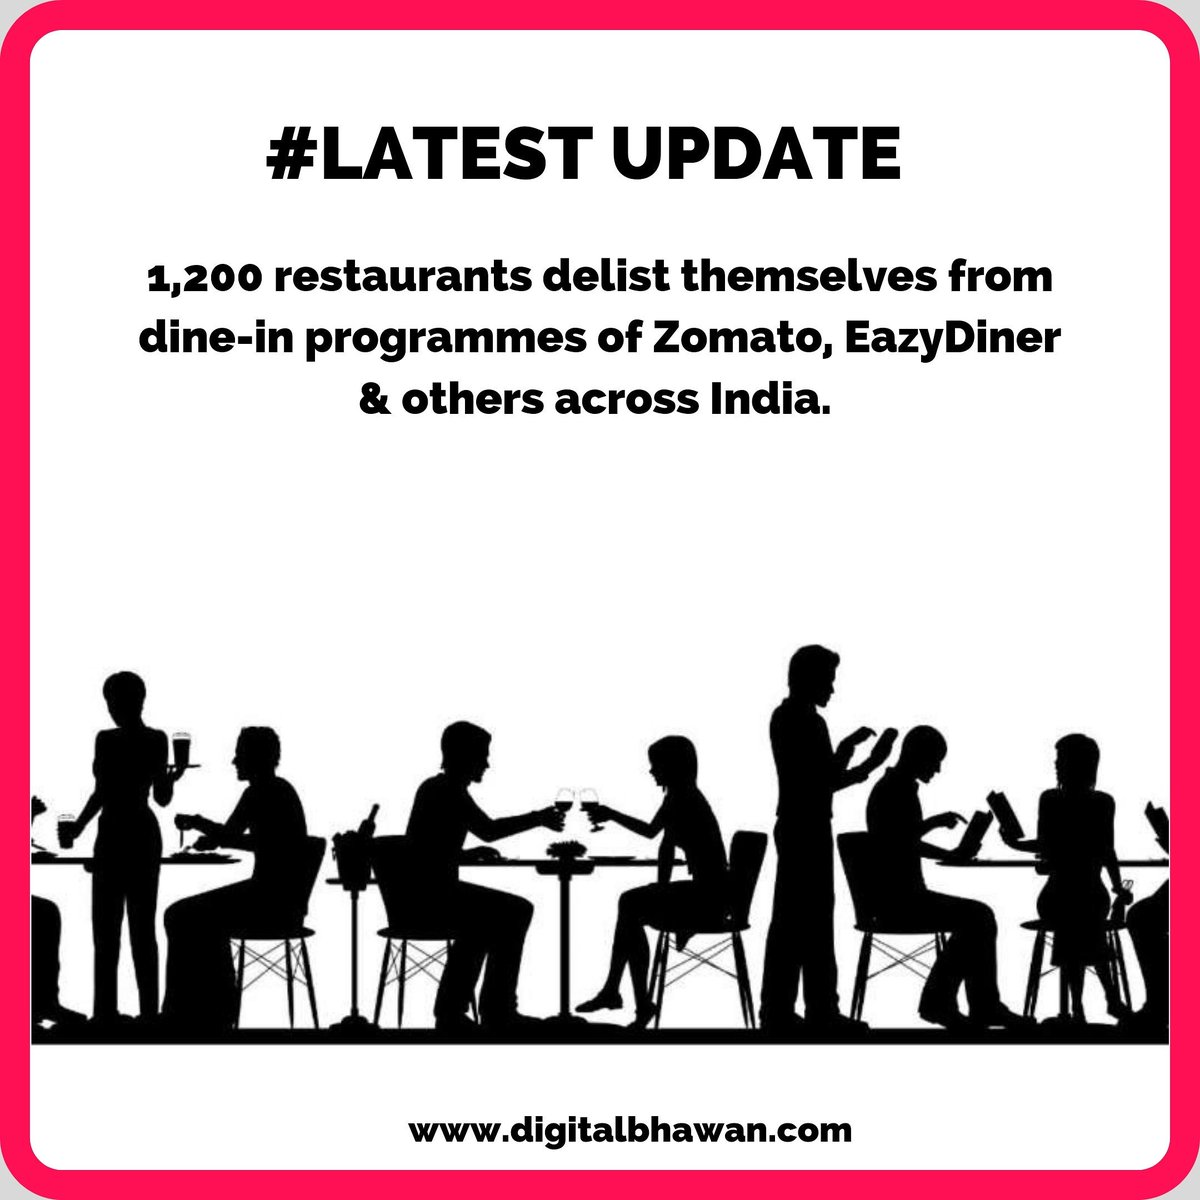 """The restaurants in Mumbai, Delhi, Bengaluru exited platforms including Zomato, EazyDiner, Nearbuy, MagicPin and Gourmet Passport under a #Logout campaign, claiming that """"unsustainable"""" deep discounting and table reservation services was hurting their business models. #UPDATE<br>http://pic.twitter.com/um5EnGWWeR"""